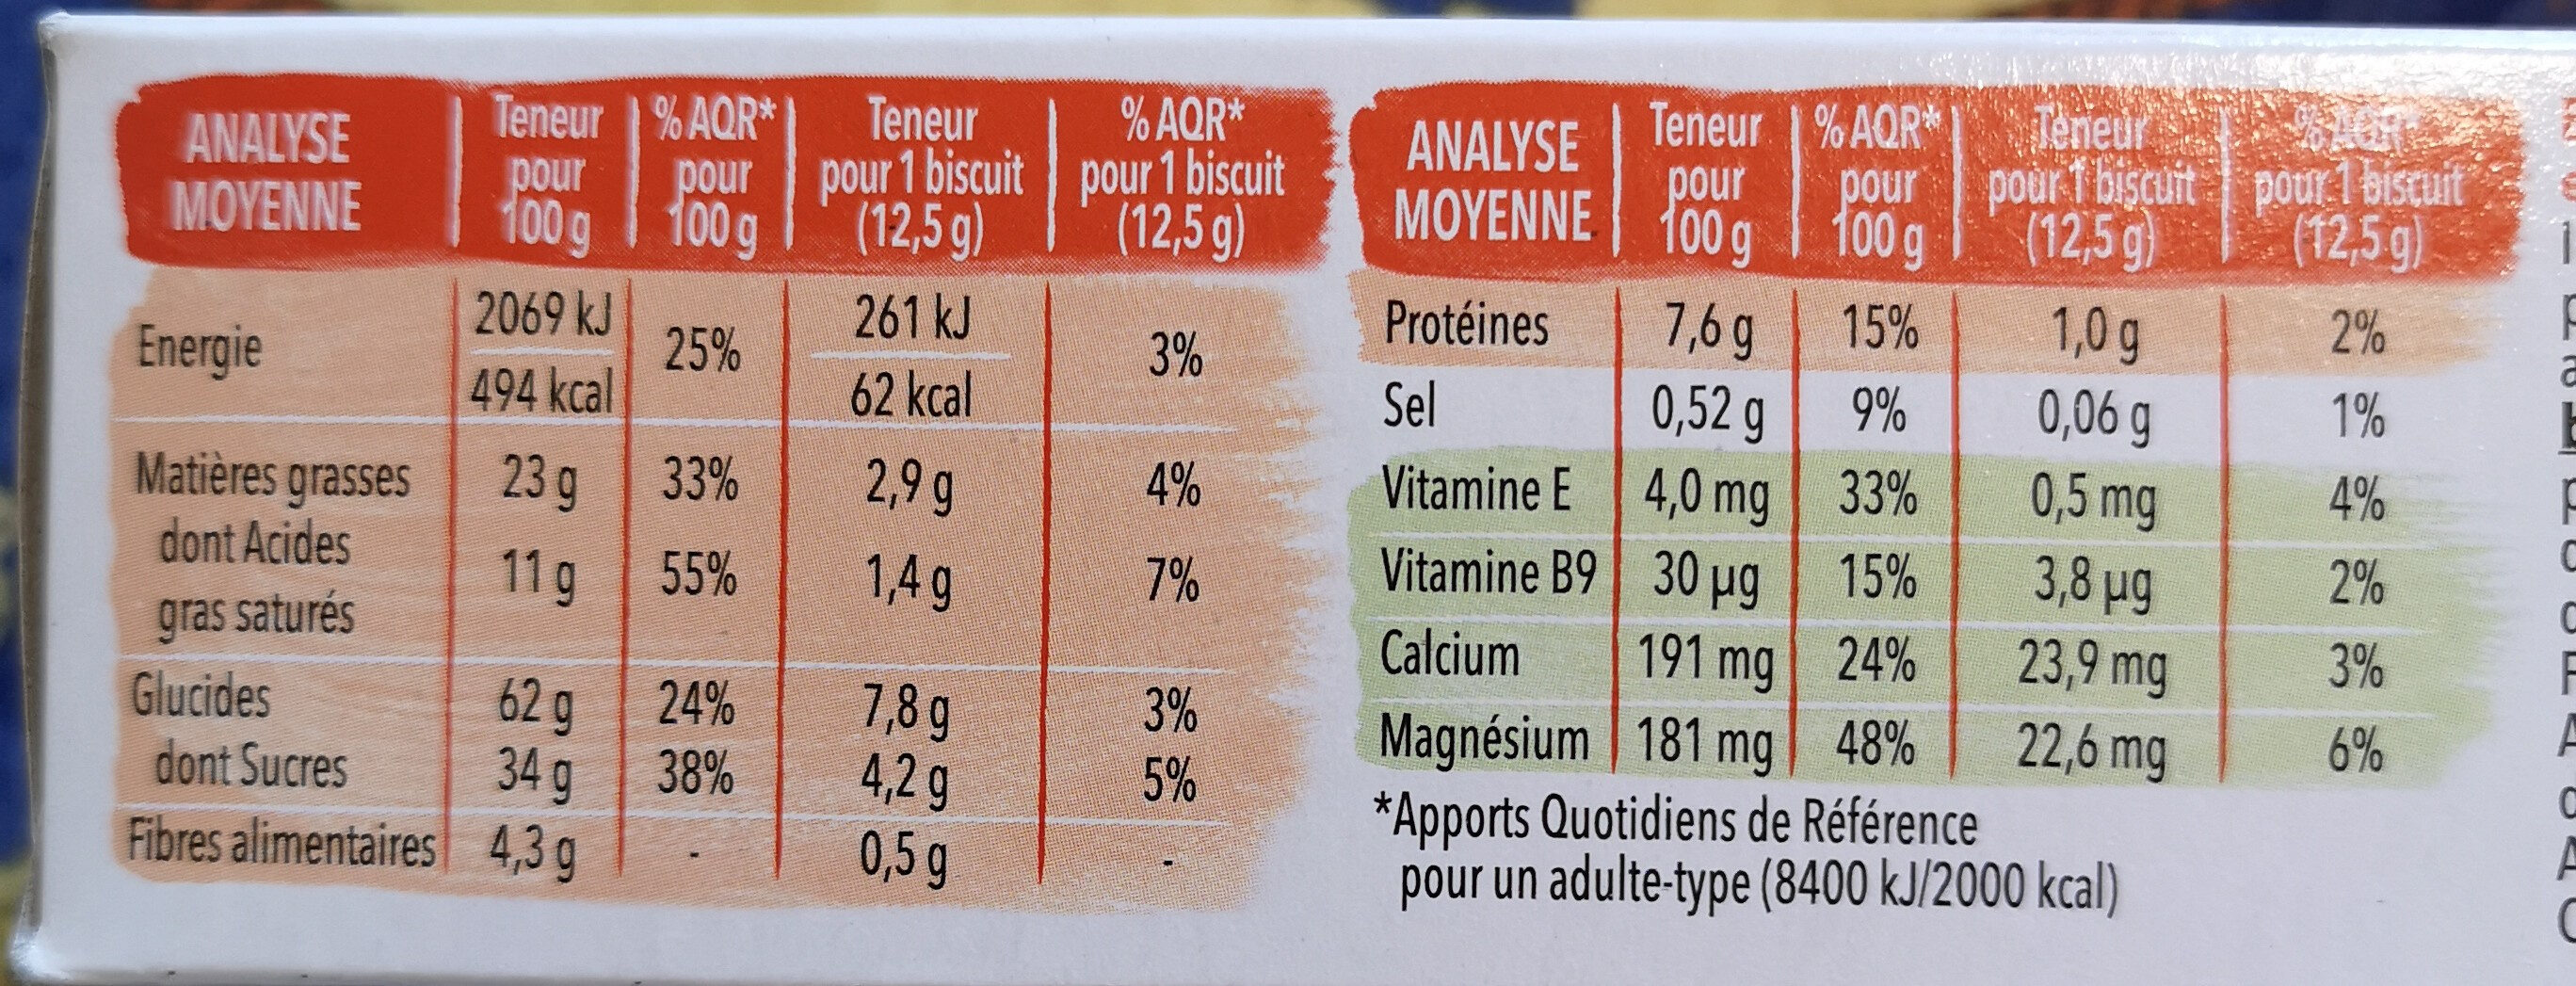 Biscuit Chocolat noir - Nutrition facts - fr